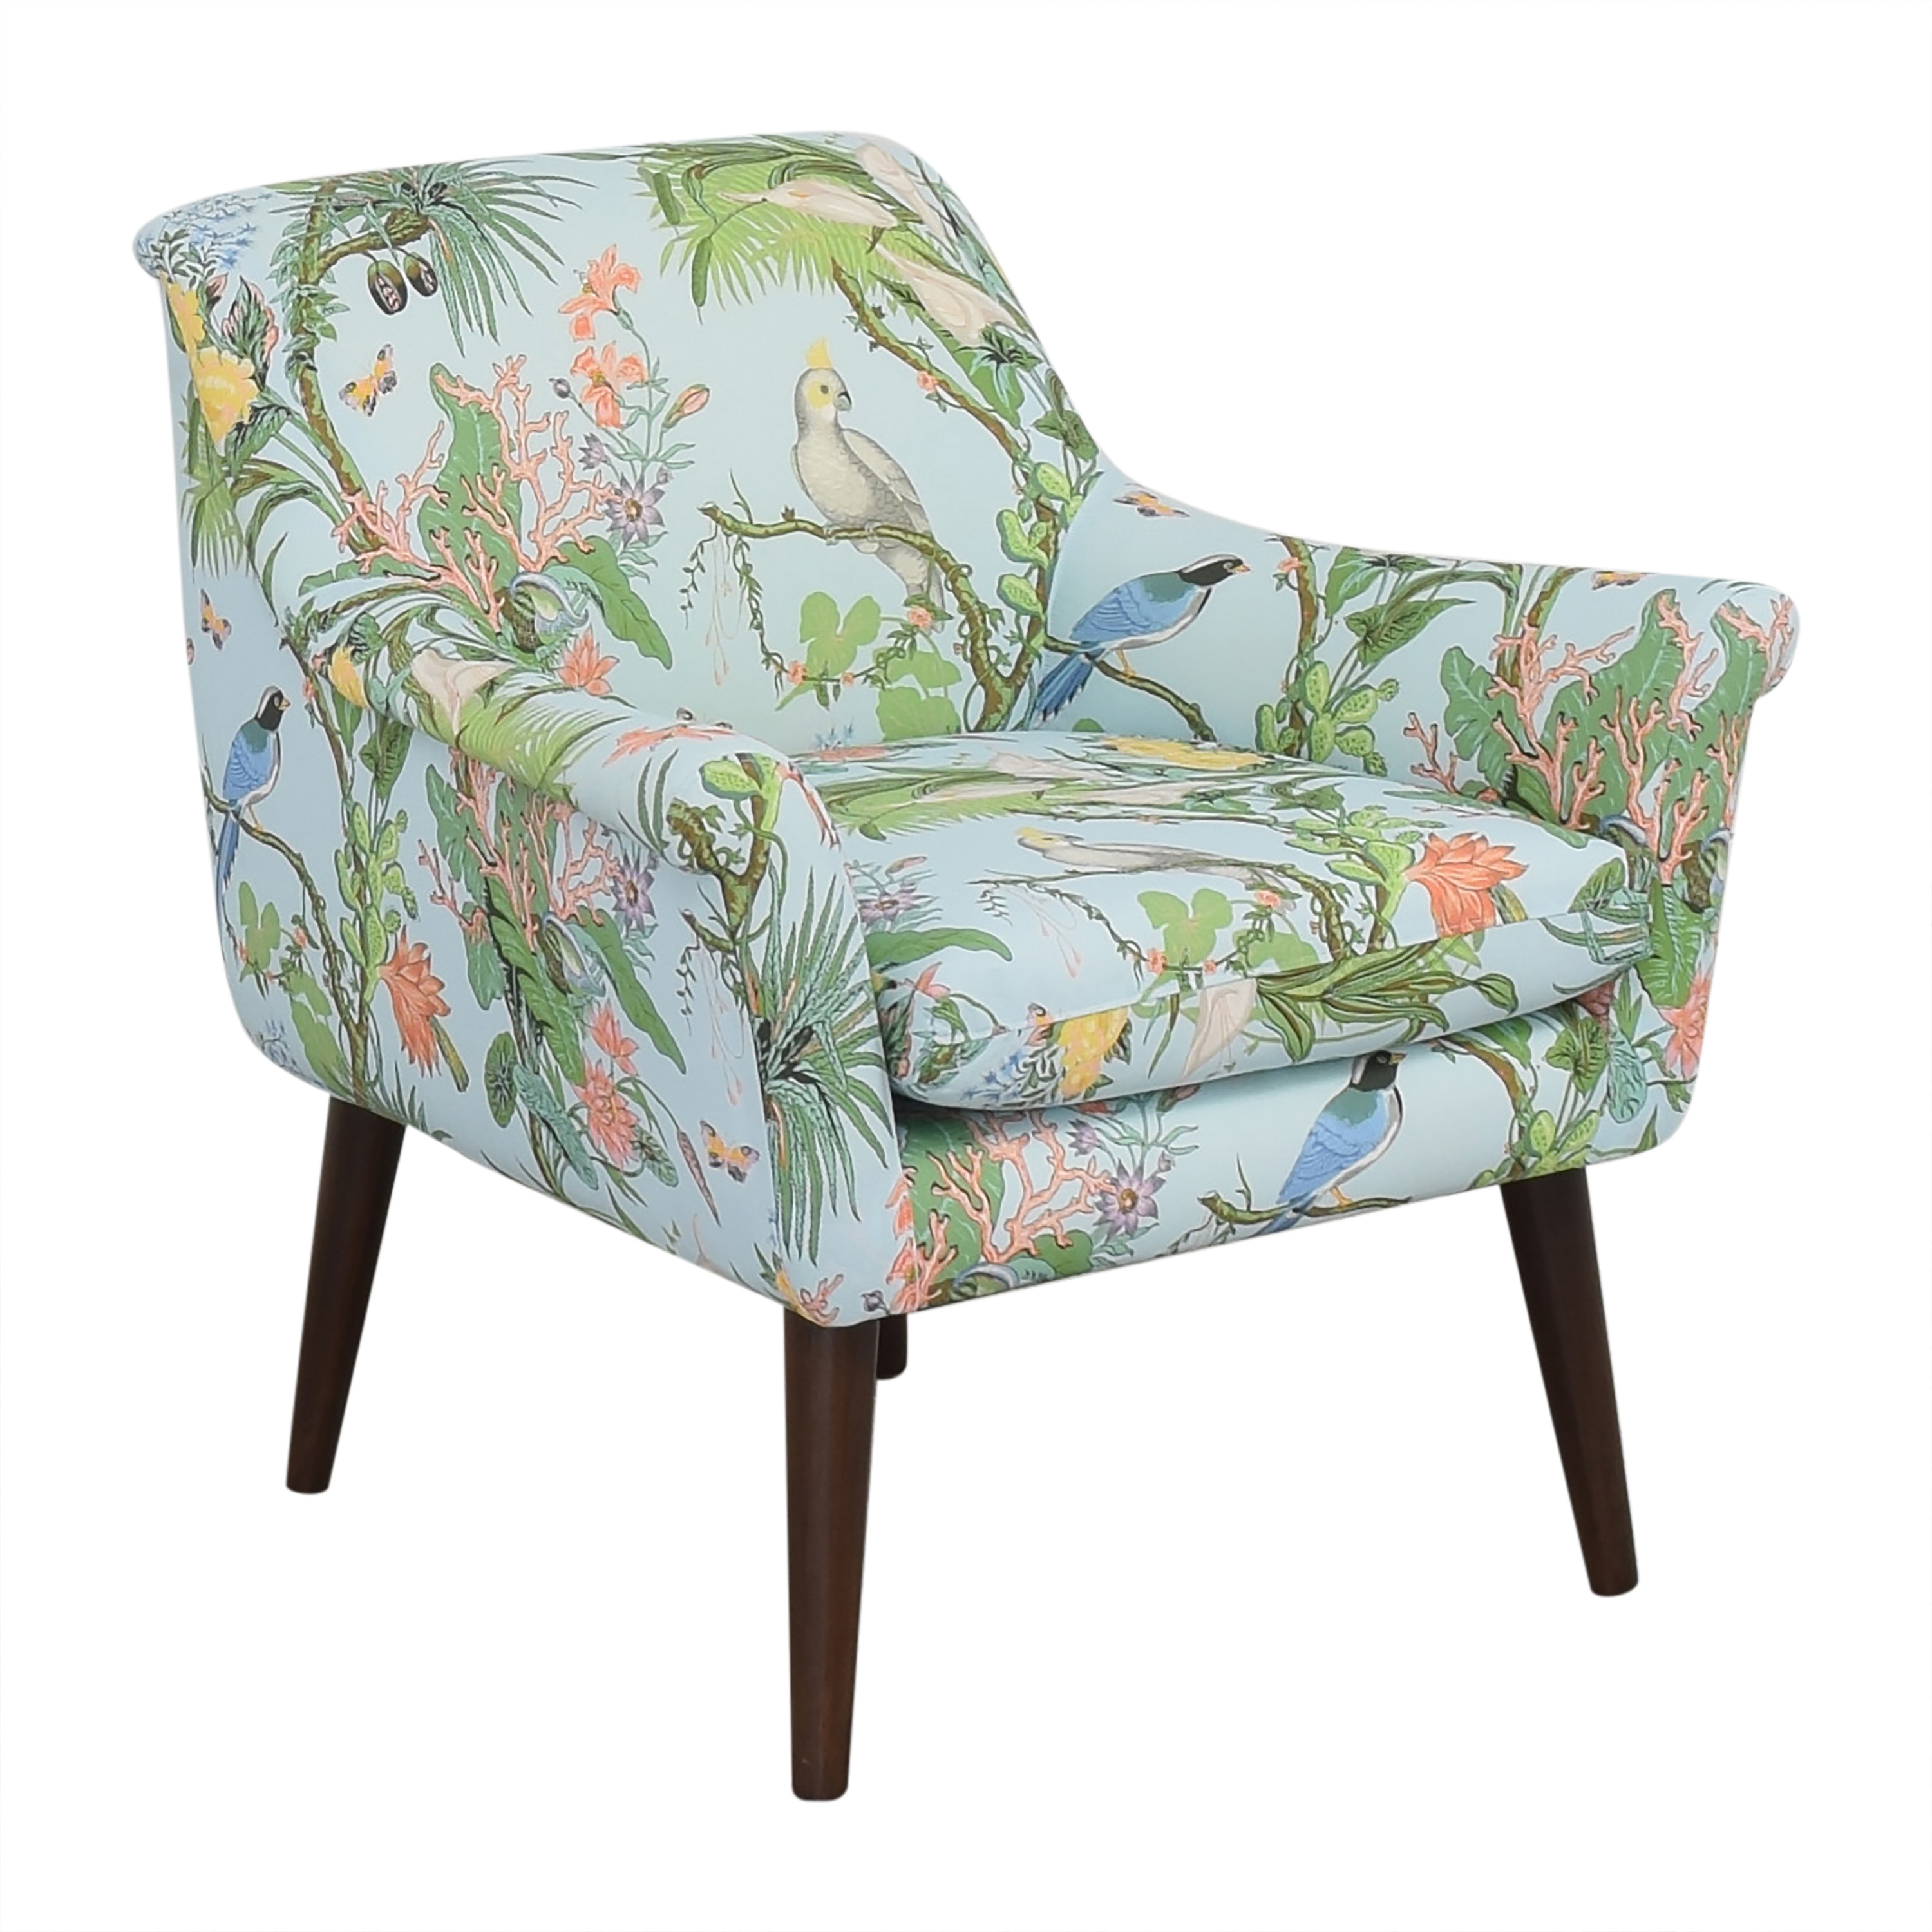 shop The Inside Upholstered Cocktail Chair The Inside